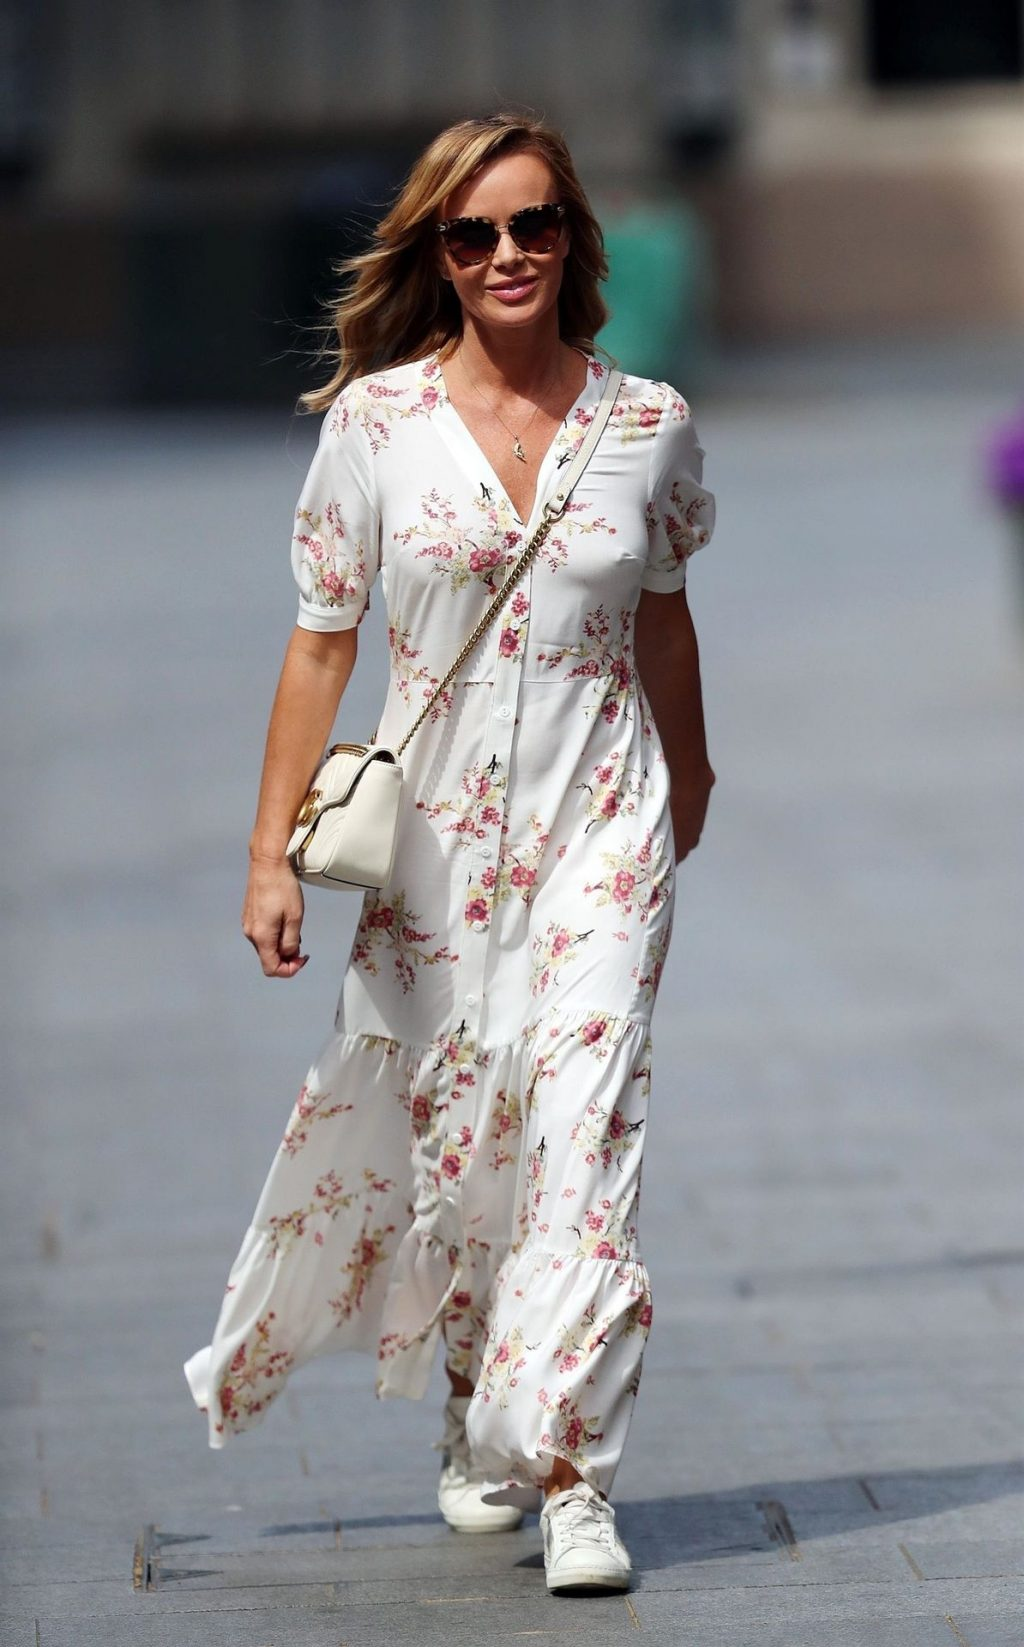 Sexy Amanda Holden Is Pictured While Leaving the Heart Radio Studios (13 Photos)